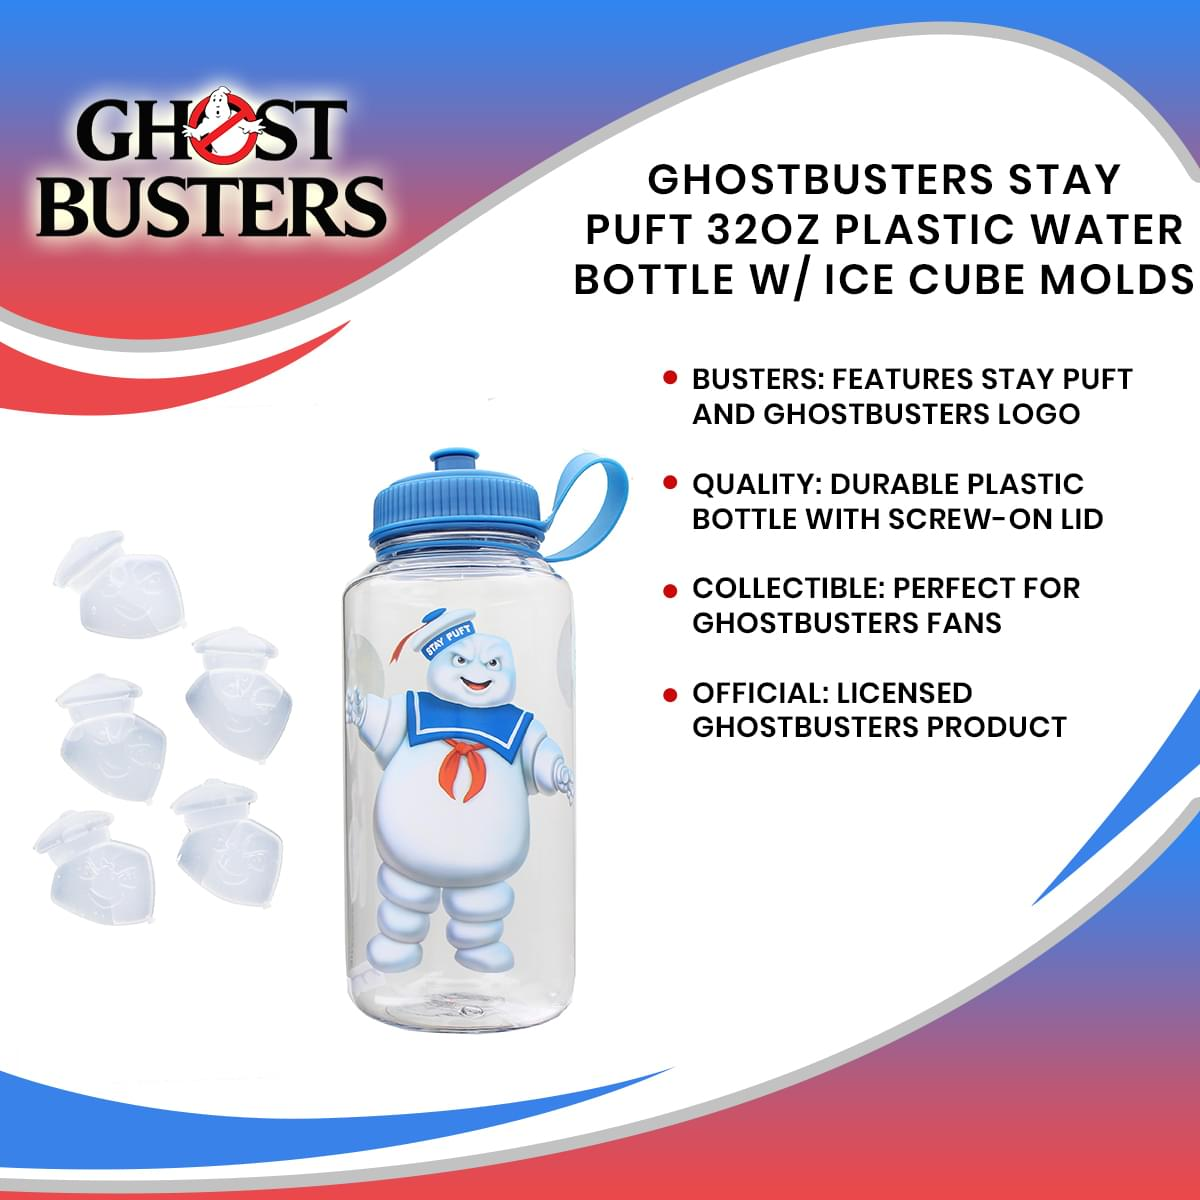 Ghostbusters Stay Puft 32oz Plastic Water Bottle w/ Ice Cube Molds